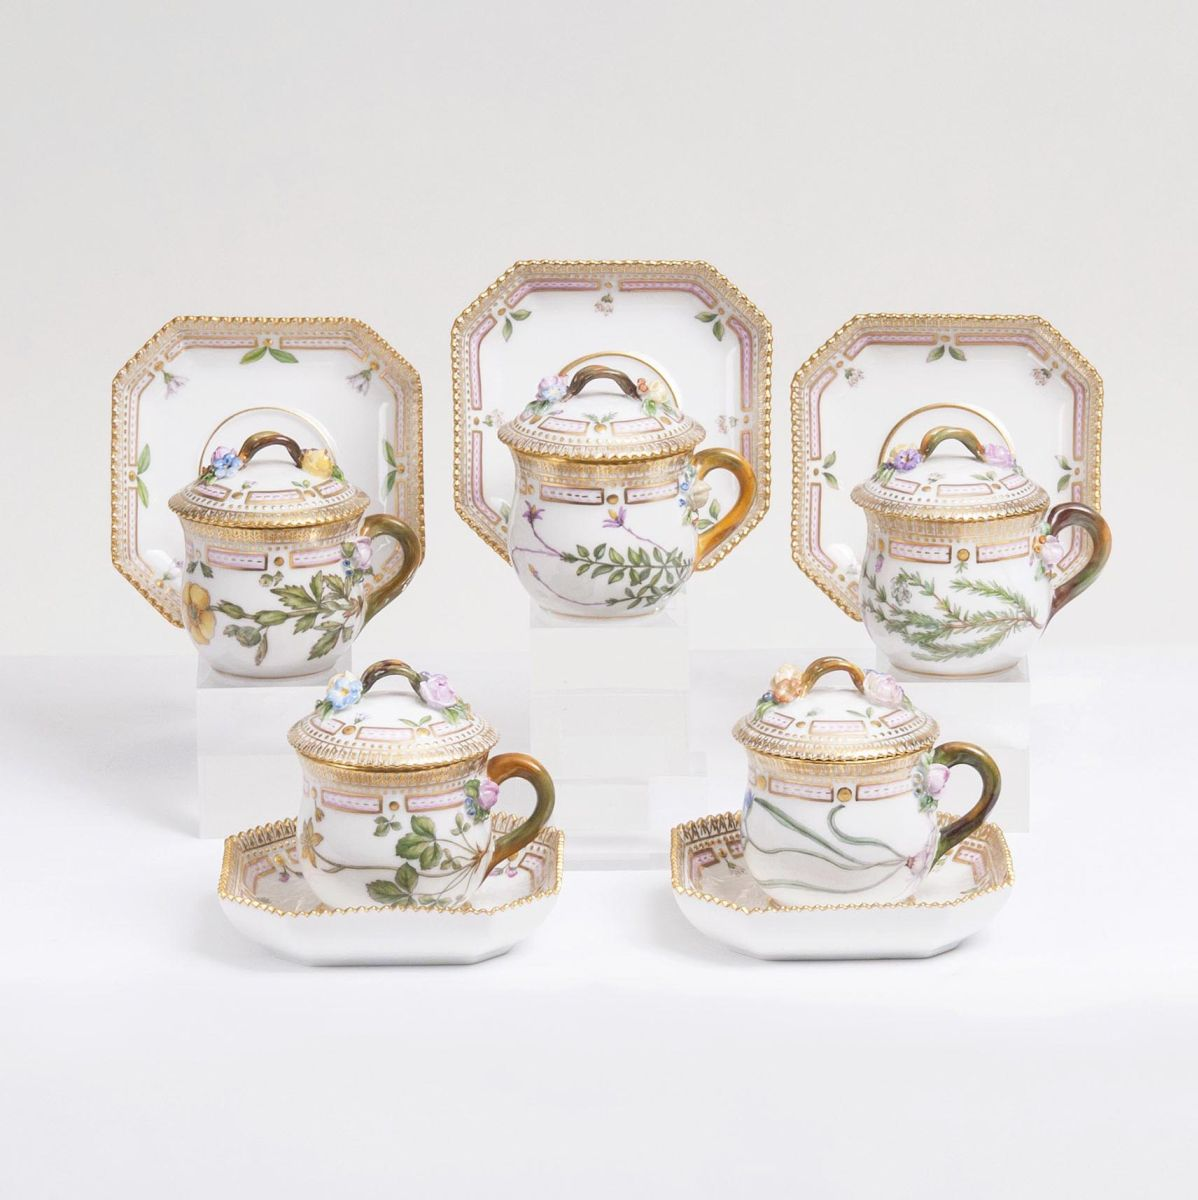 A Set of 5 small Flora Danica Lidded Bouillon Cups with Polygonal Saucers